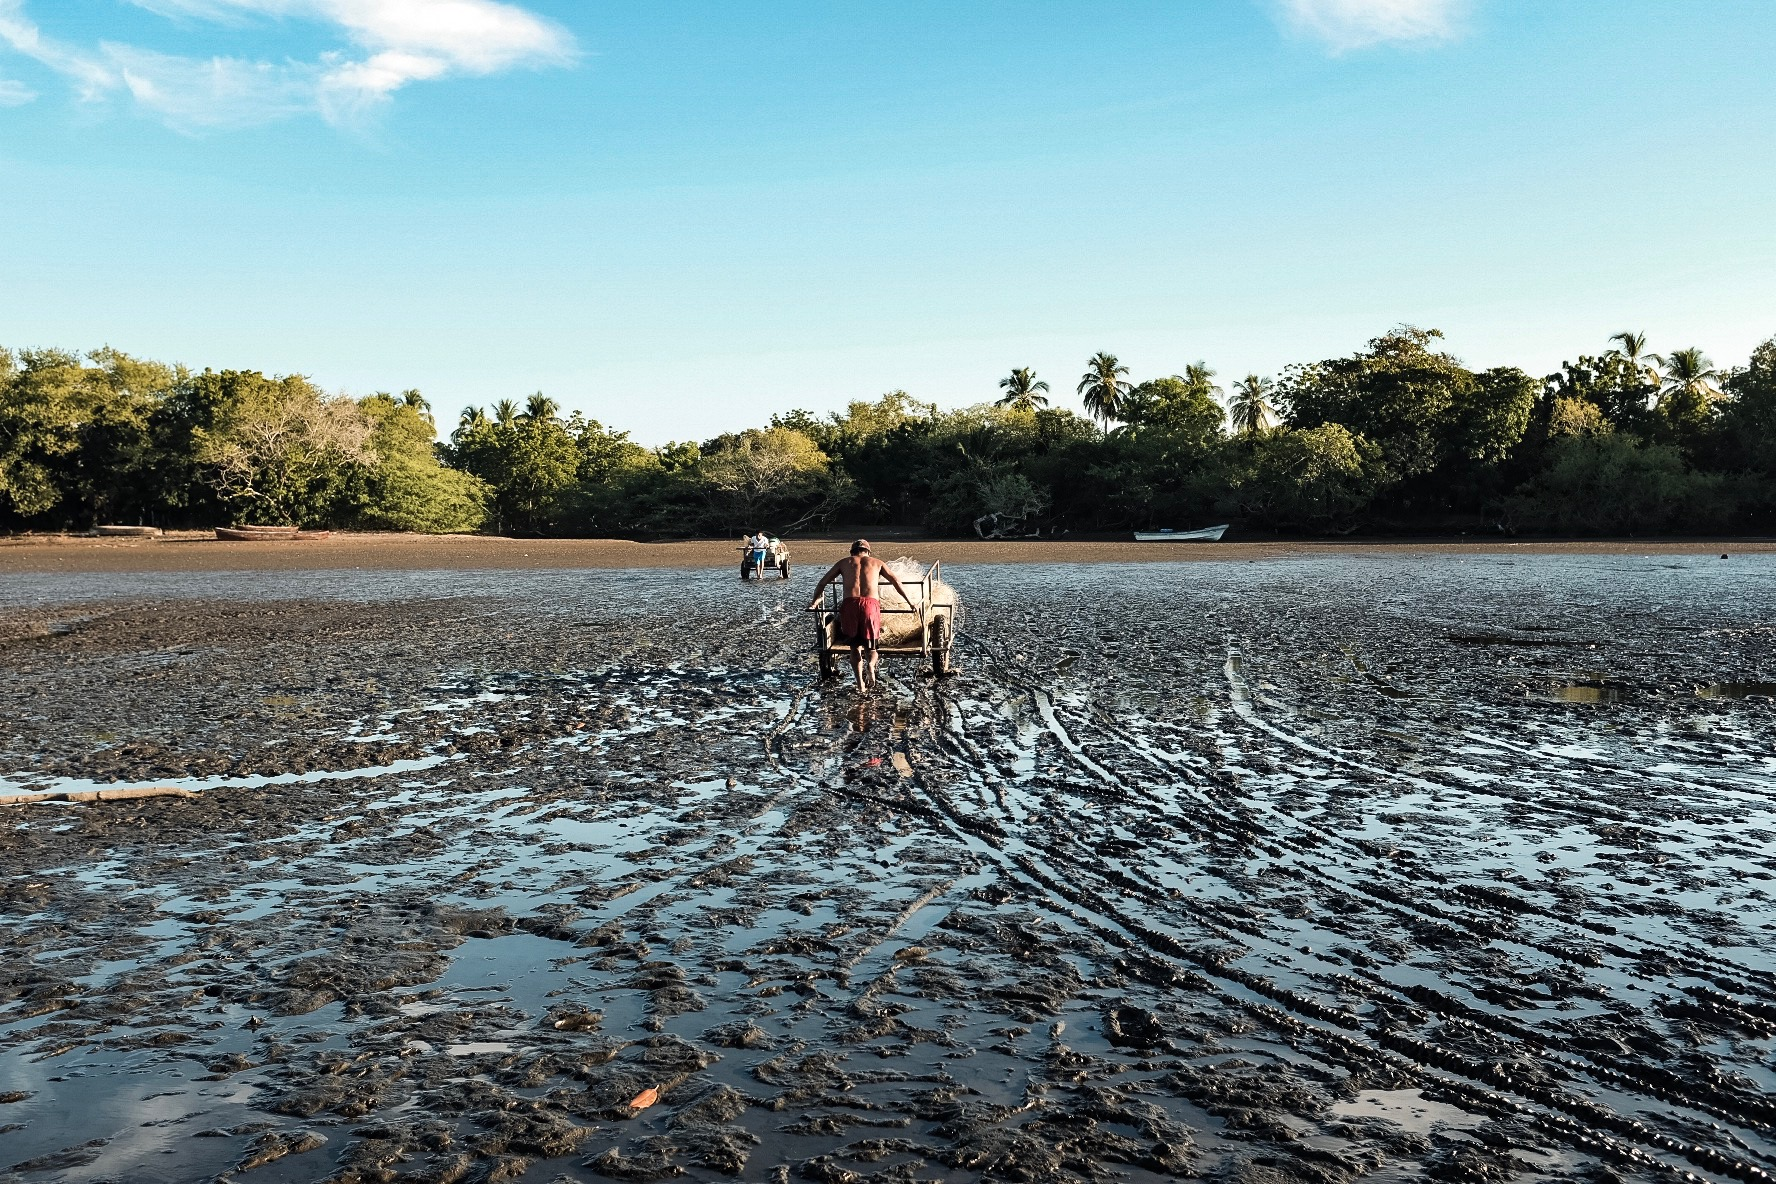 A man hauls a used net back to shore.